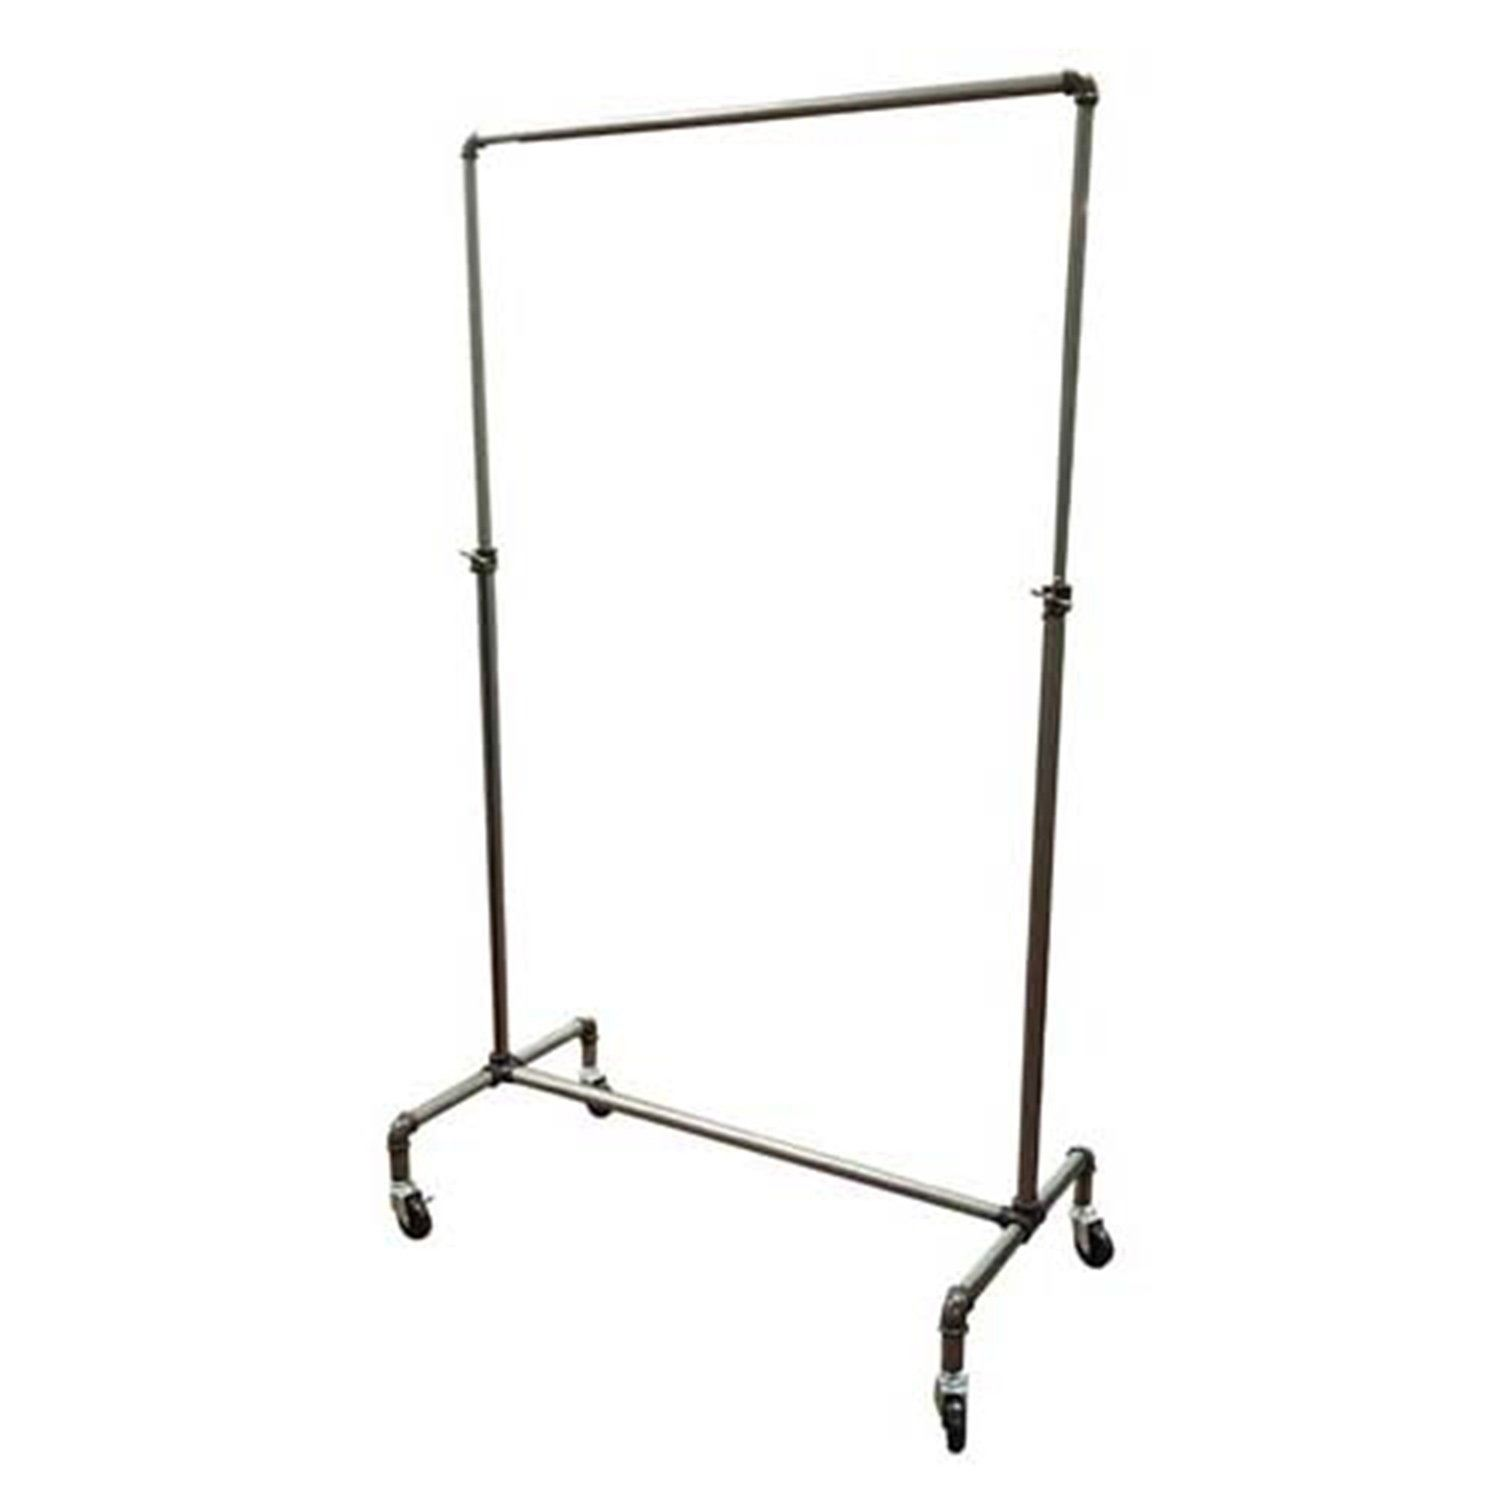 "Pipeline Ballet Bar Rack 42"" L X44 To 77""H - Display Fixture Warehouse Retail"